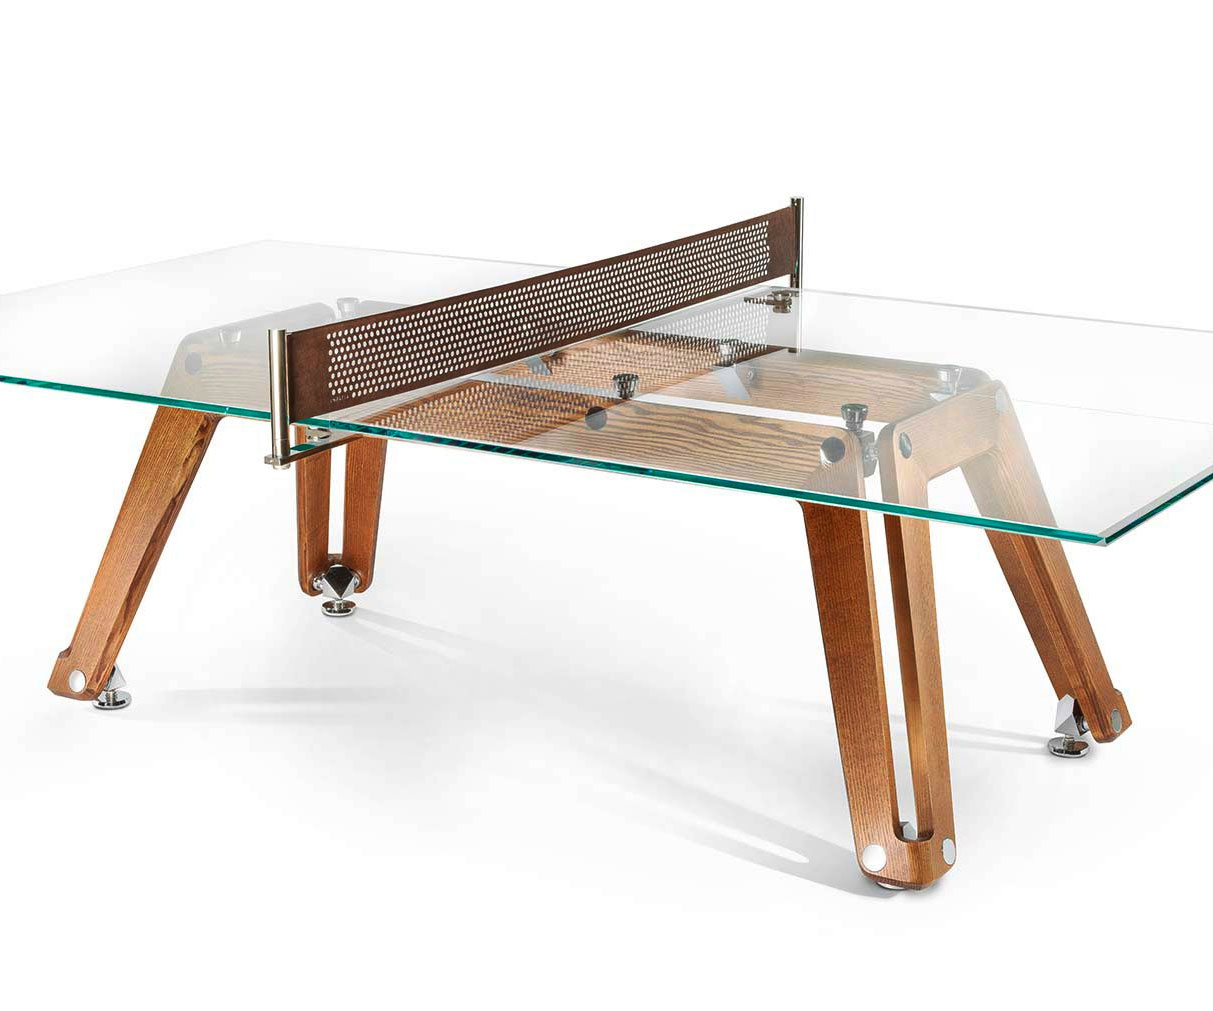 Bespoke Wood & Glass Ping Pong Table